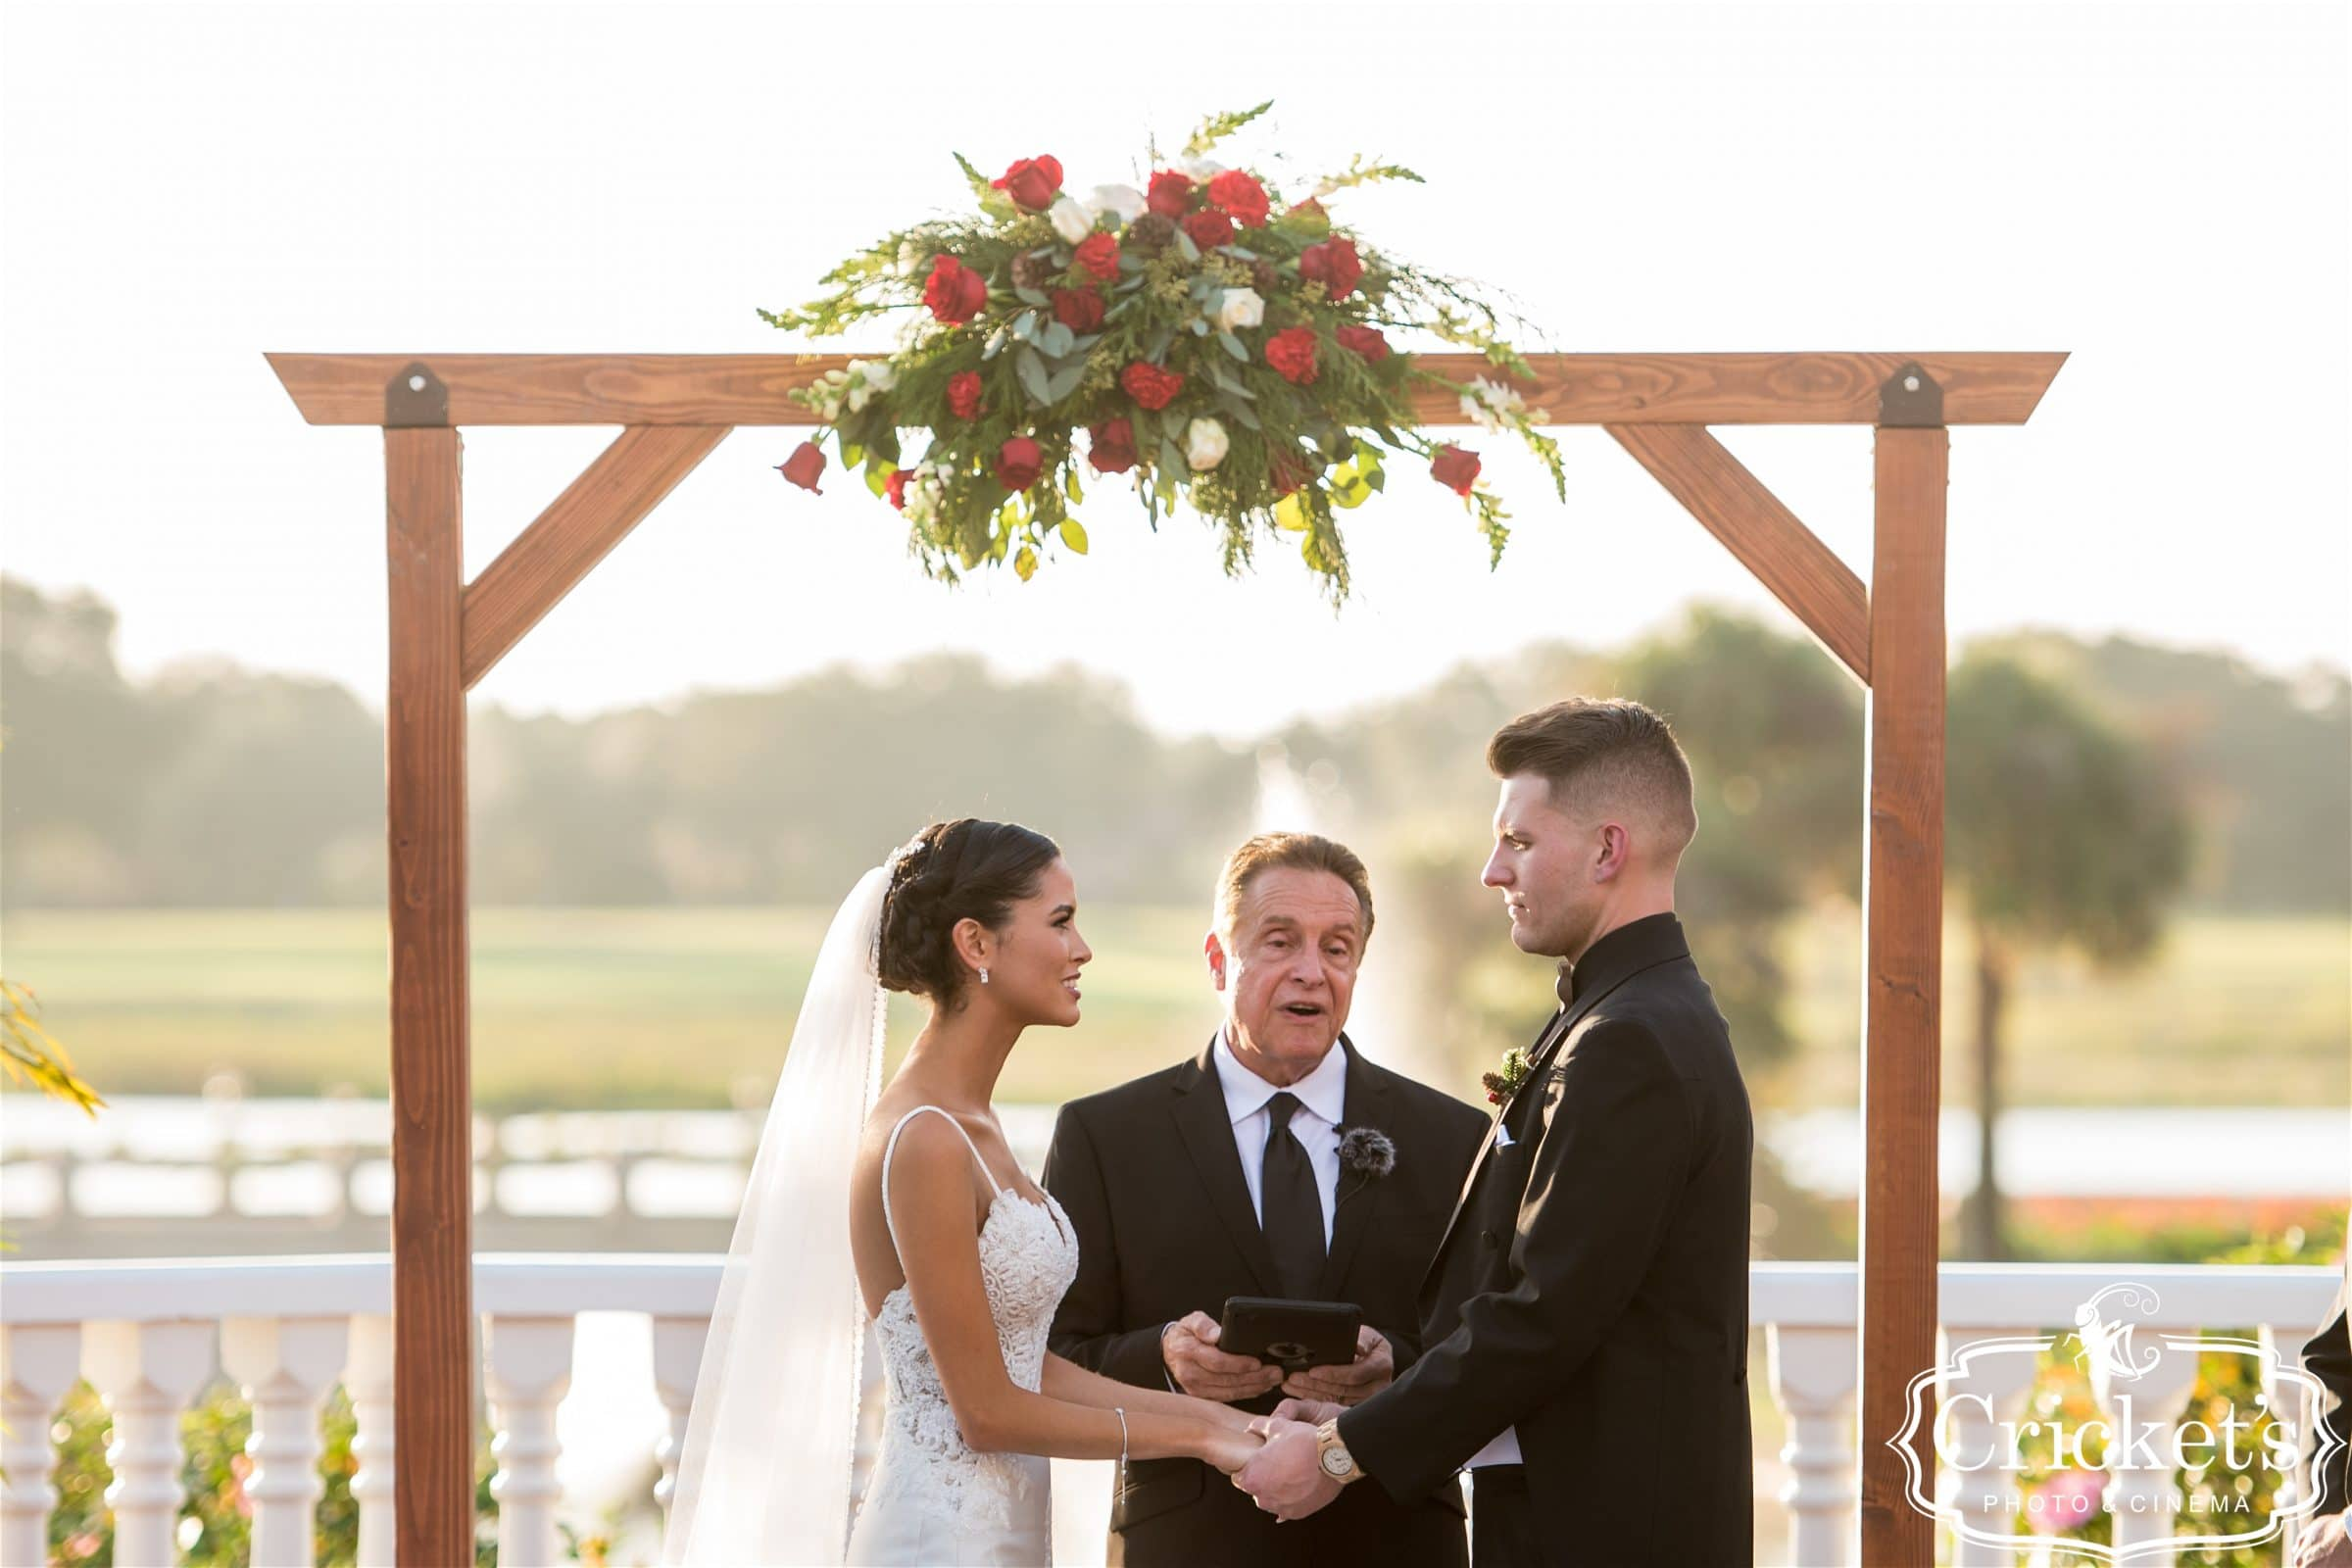 Wedding Vows with Central Florida wedding officiant